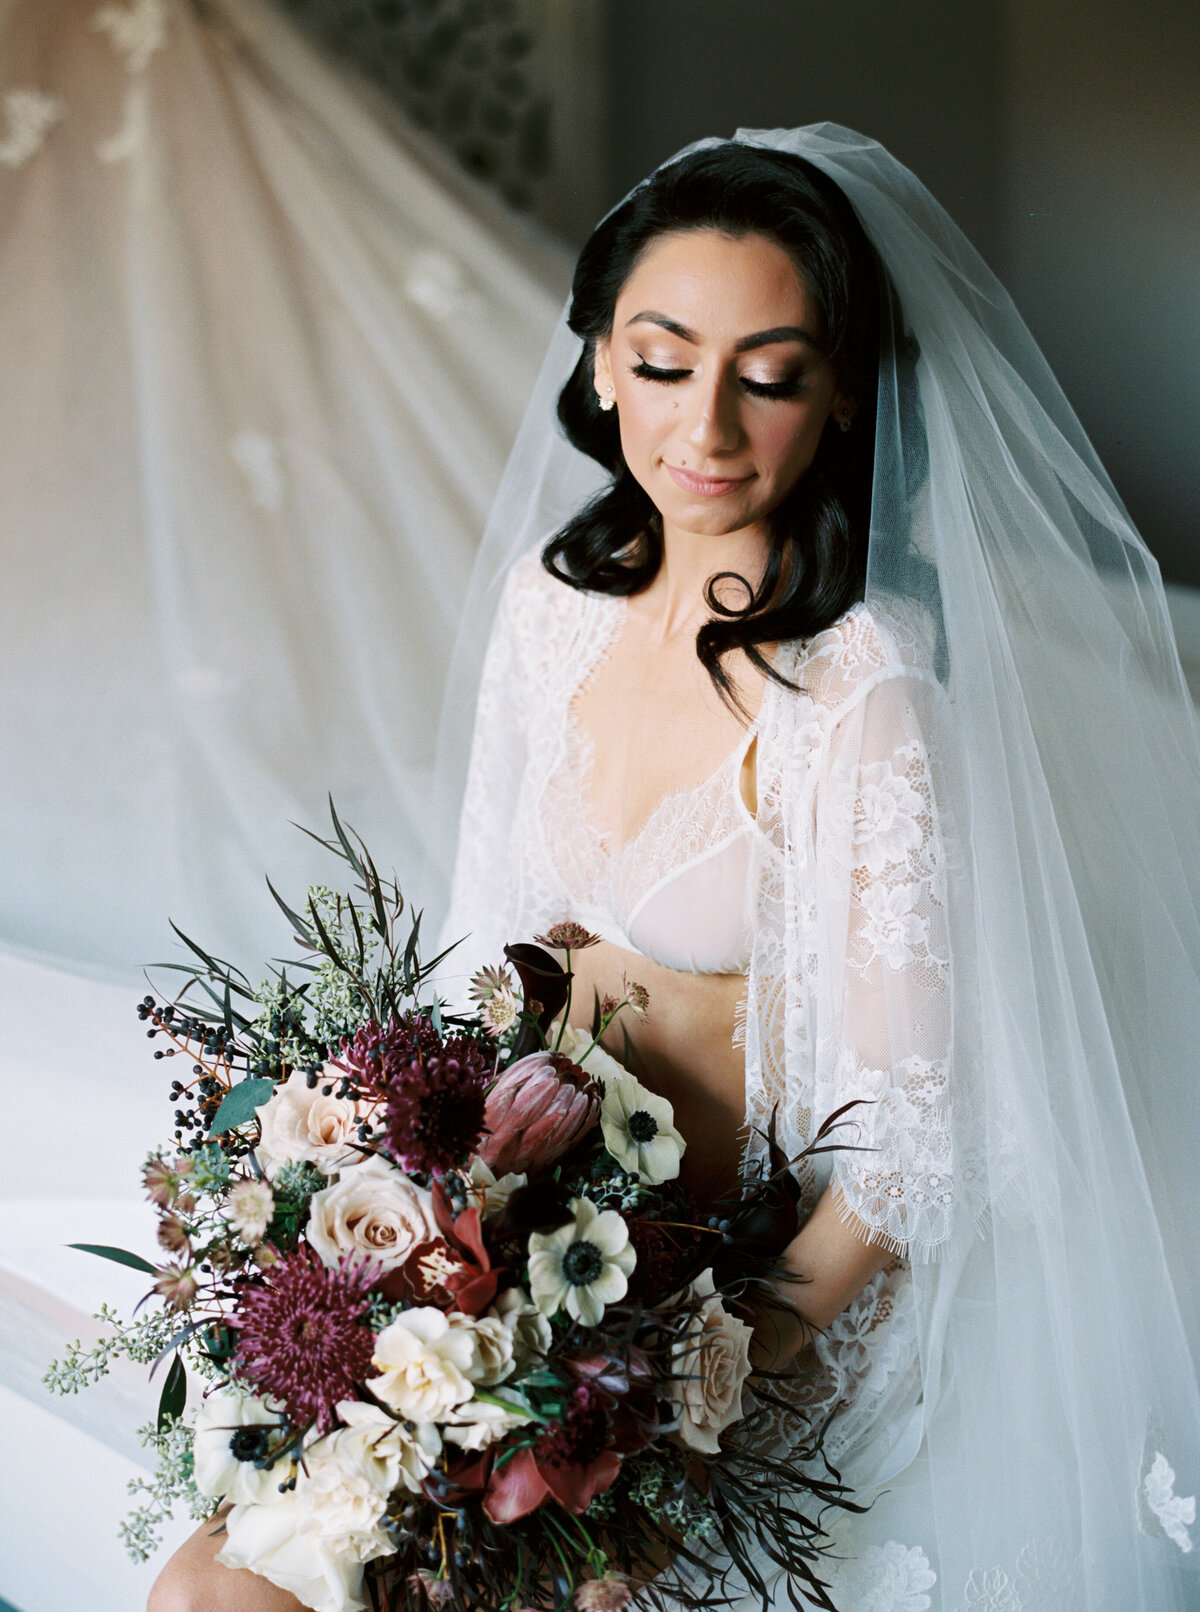 Kaylea Moreno_wedding gallery - Rami-Cassandra-Wedding-krmorenophoto-55